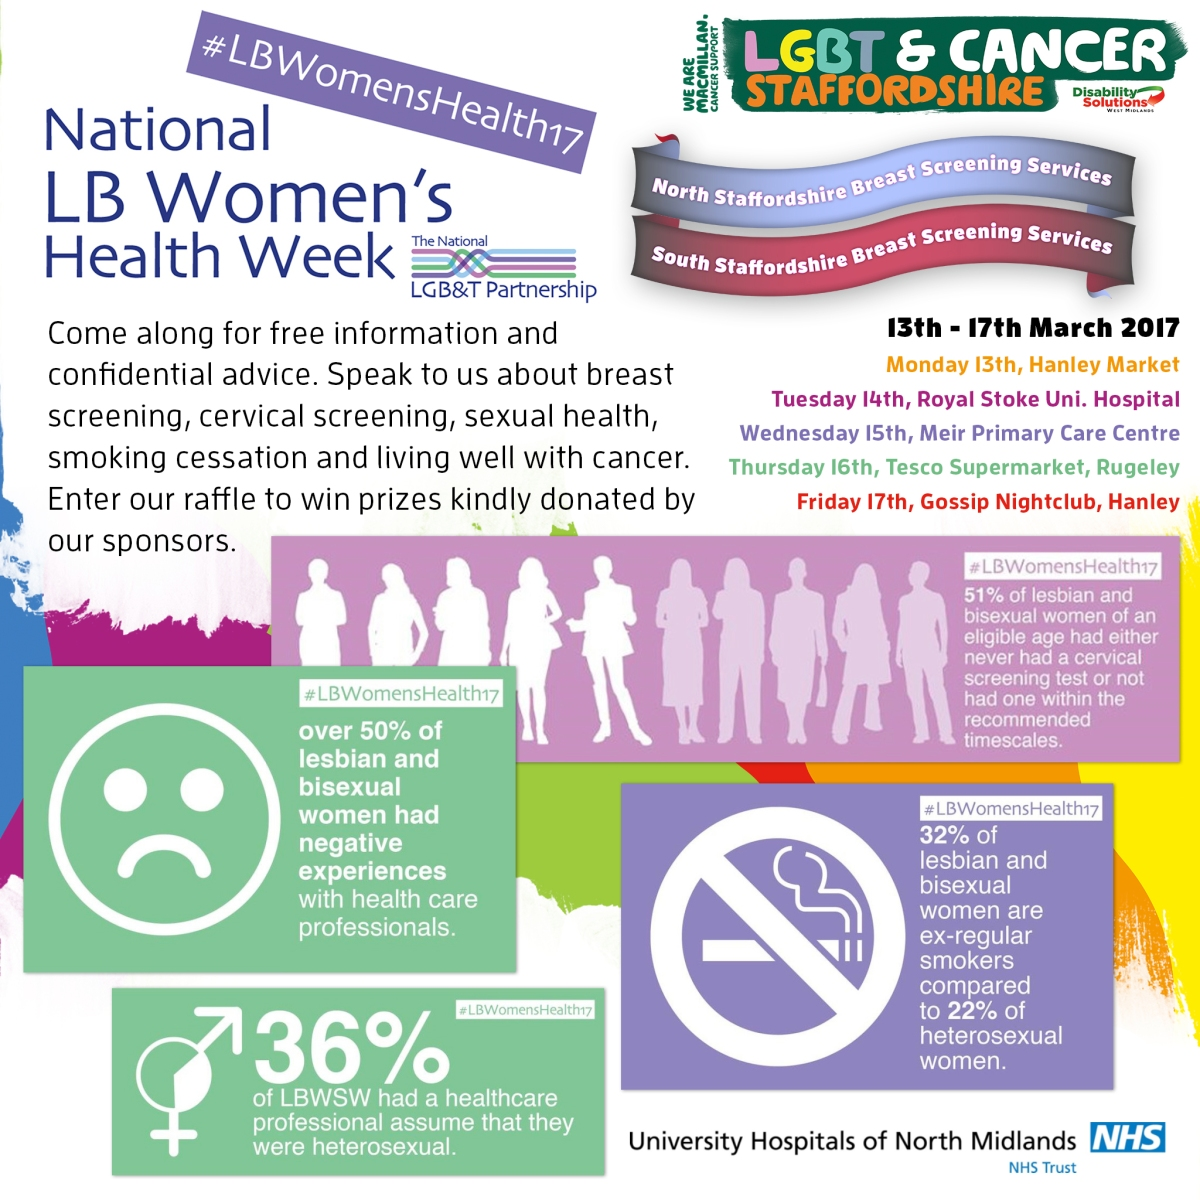 LGBT people & Cancer in Manchester and Staffordshire #LBWomensHealth17